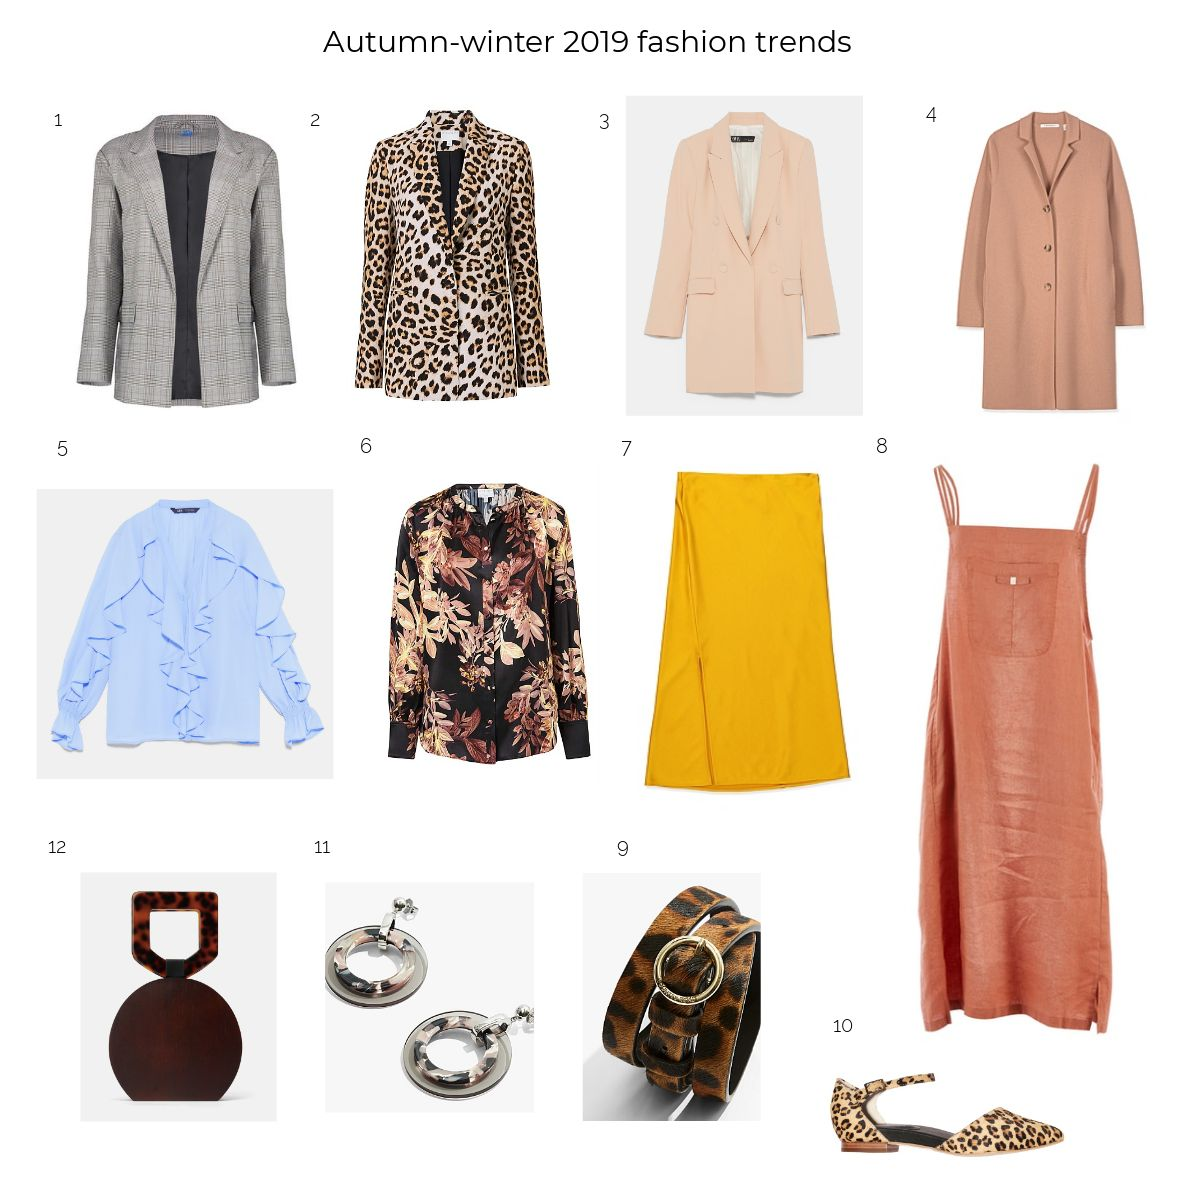 Autumn-winter fashion trends